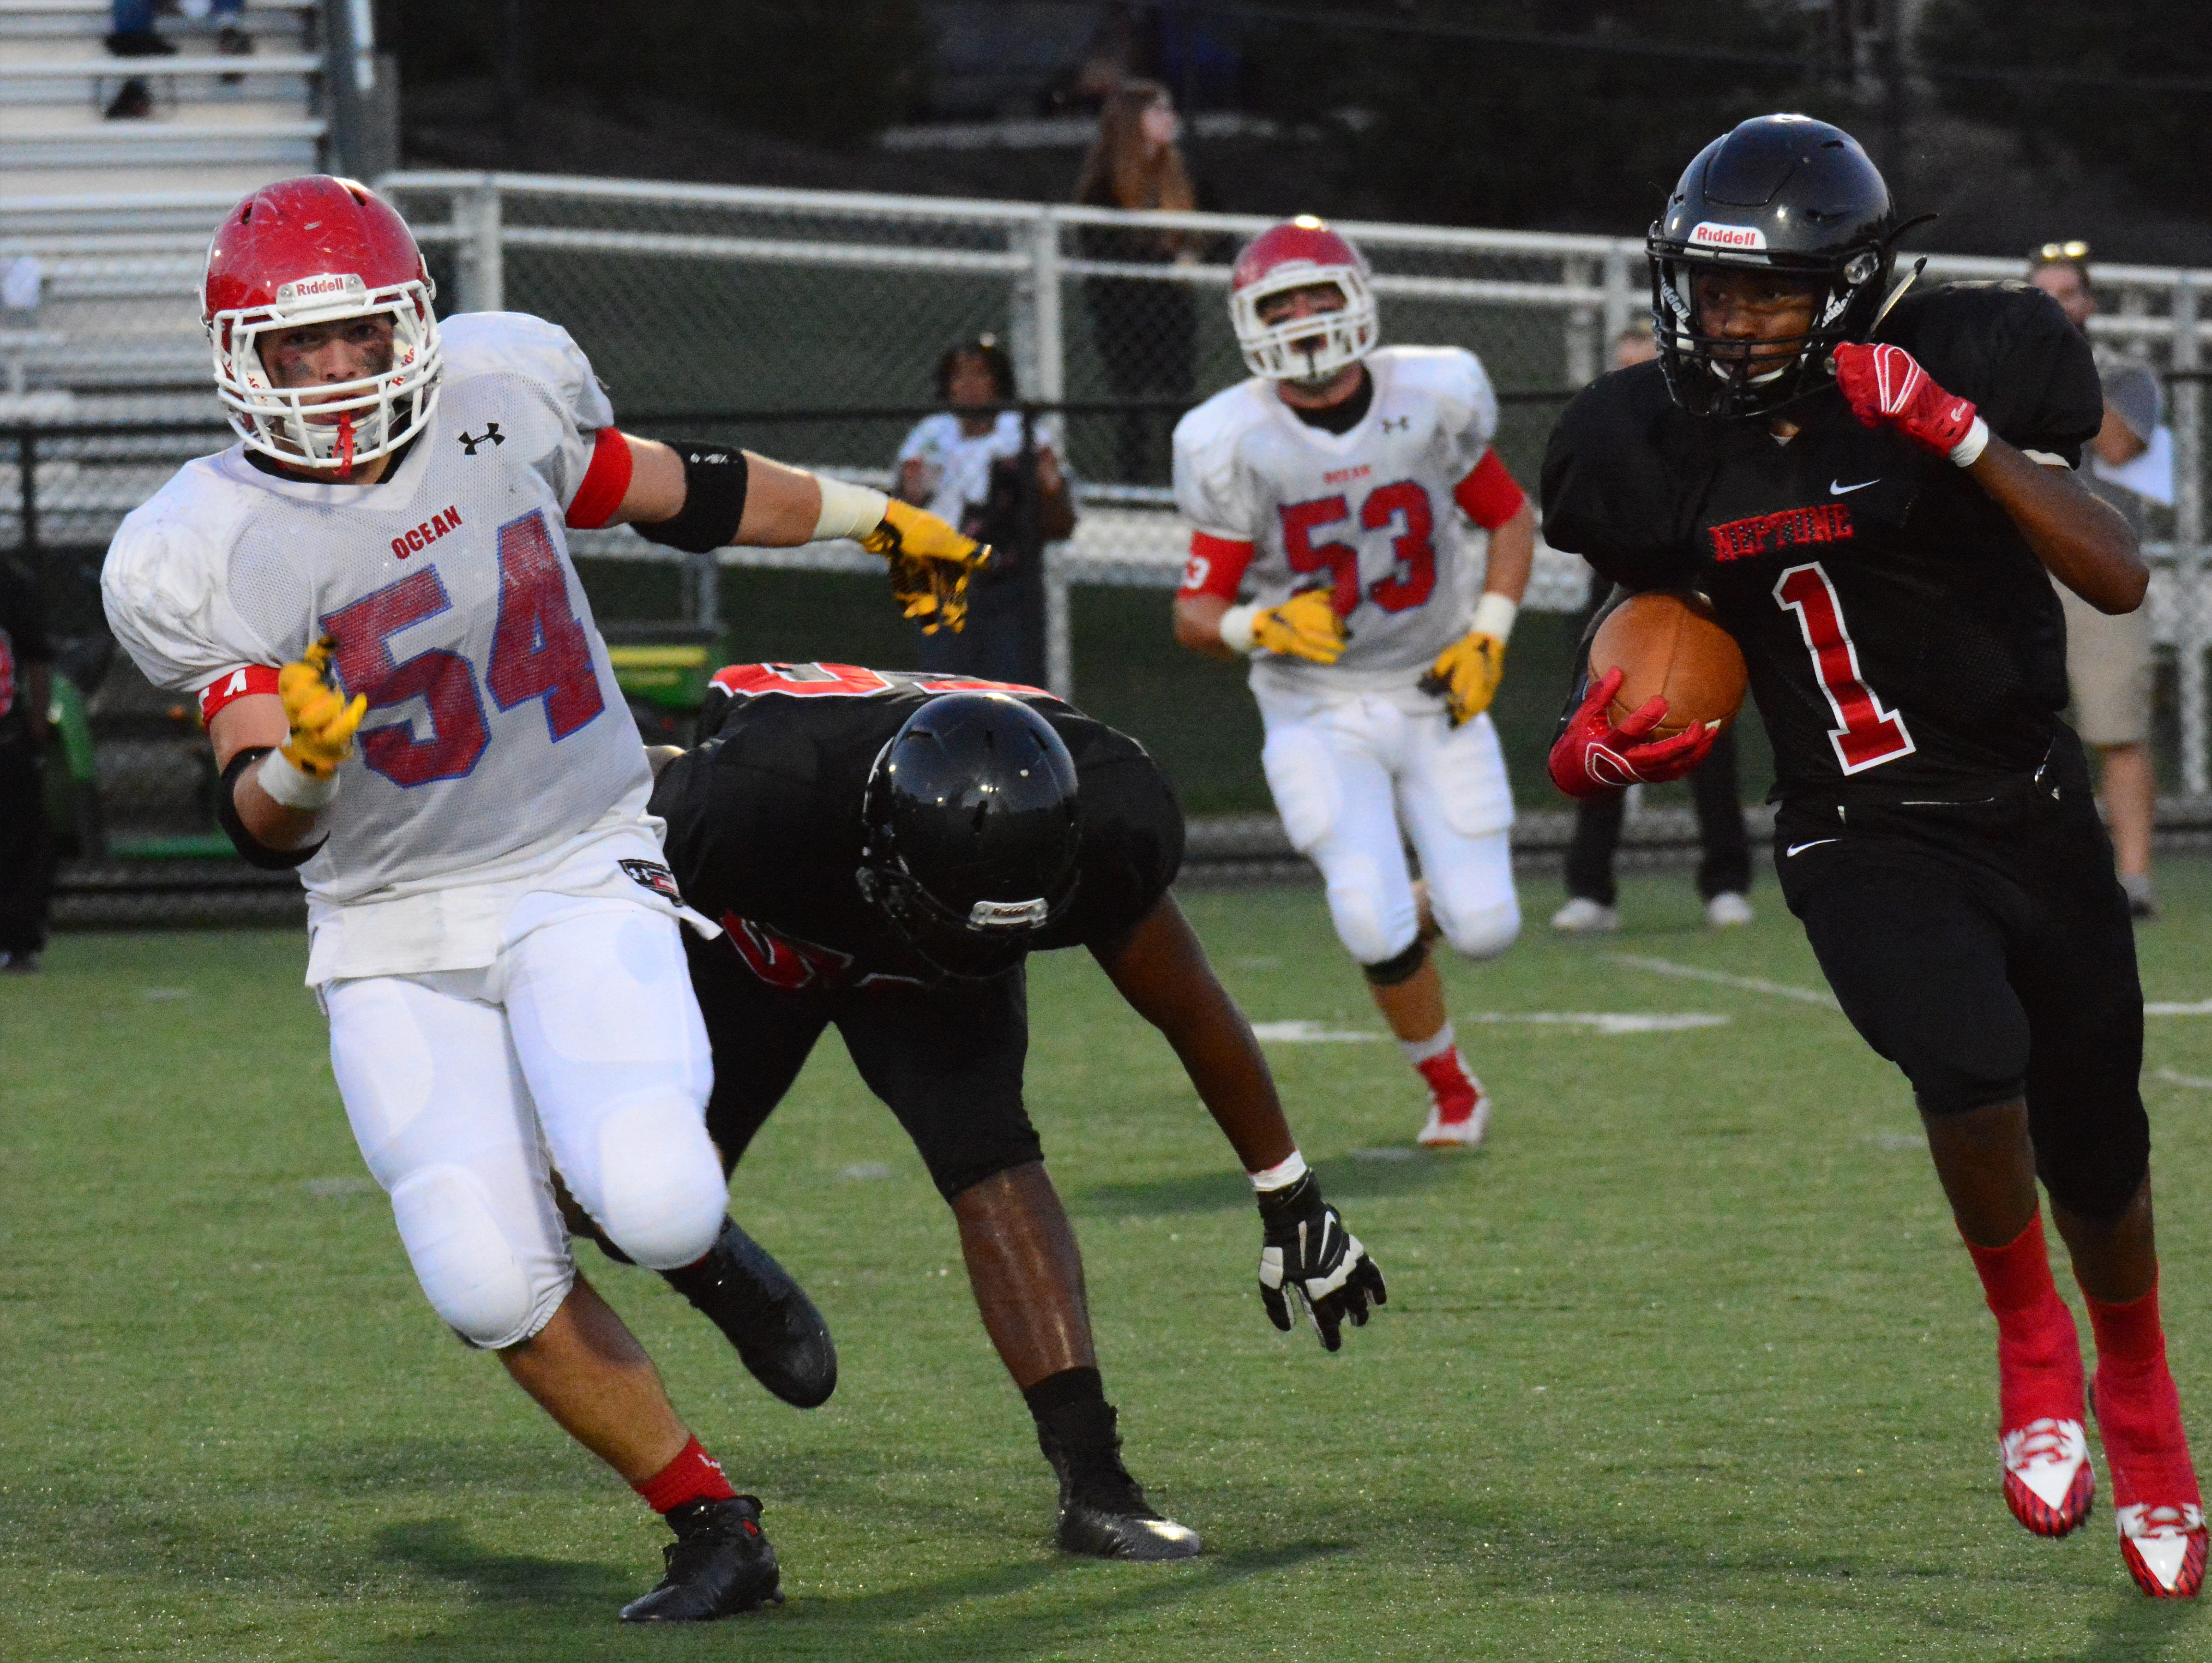 (SPORTS) 09/11/15 Neptune, NJ Neptune's Isaiha Calhoun (1) is persued by Ocean's Anthony Tedesco (54) during first half action at Neptune. Frank Galipo/Special to the Press ASB 0912 Neptune Football H